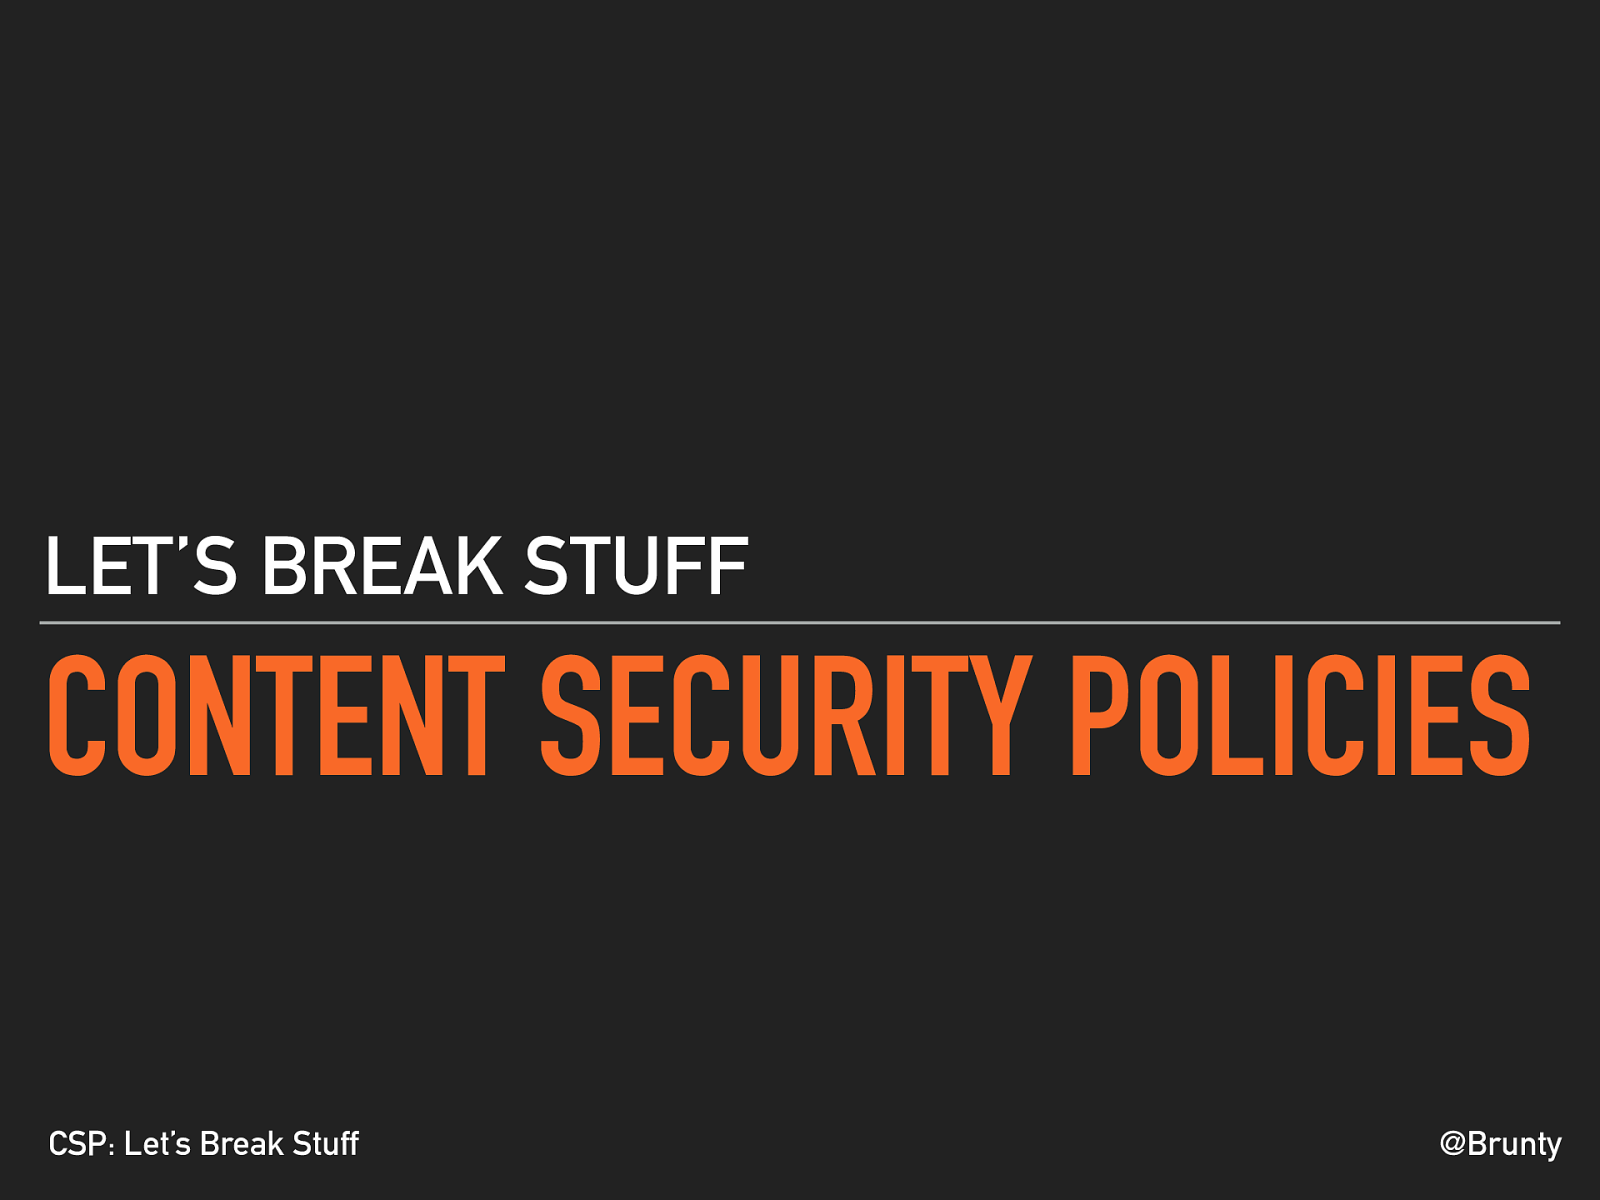 Content Security Policies: Let's Break Stuff